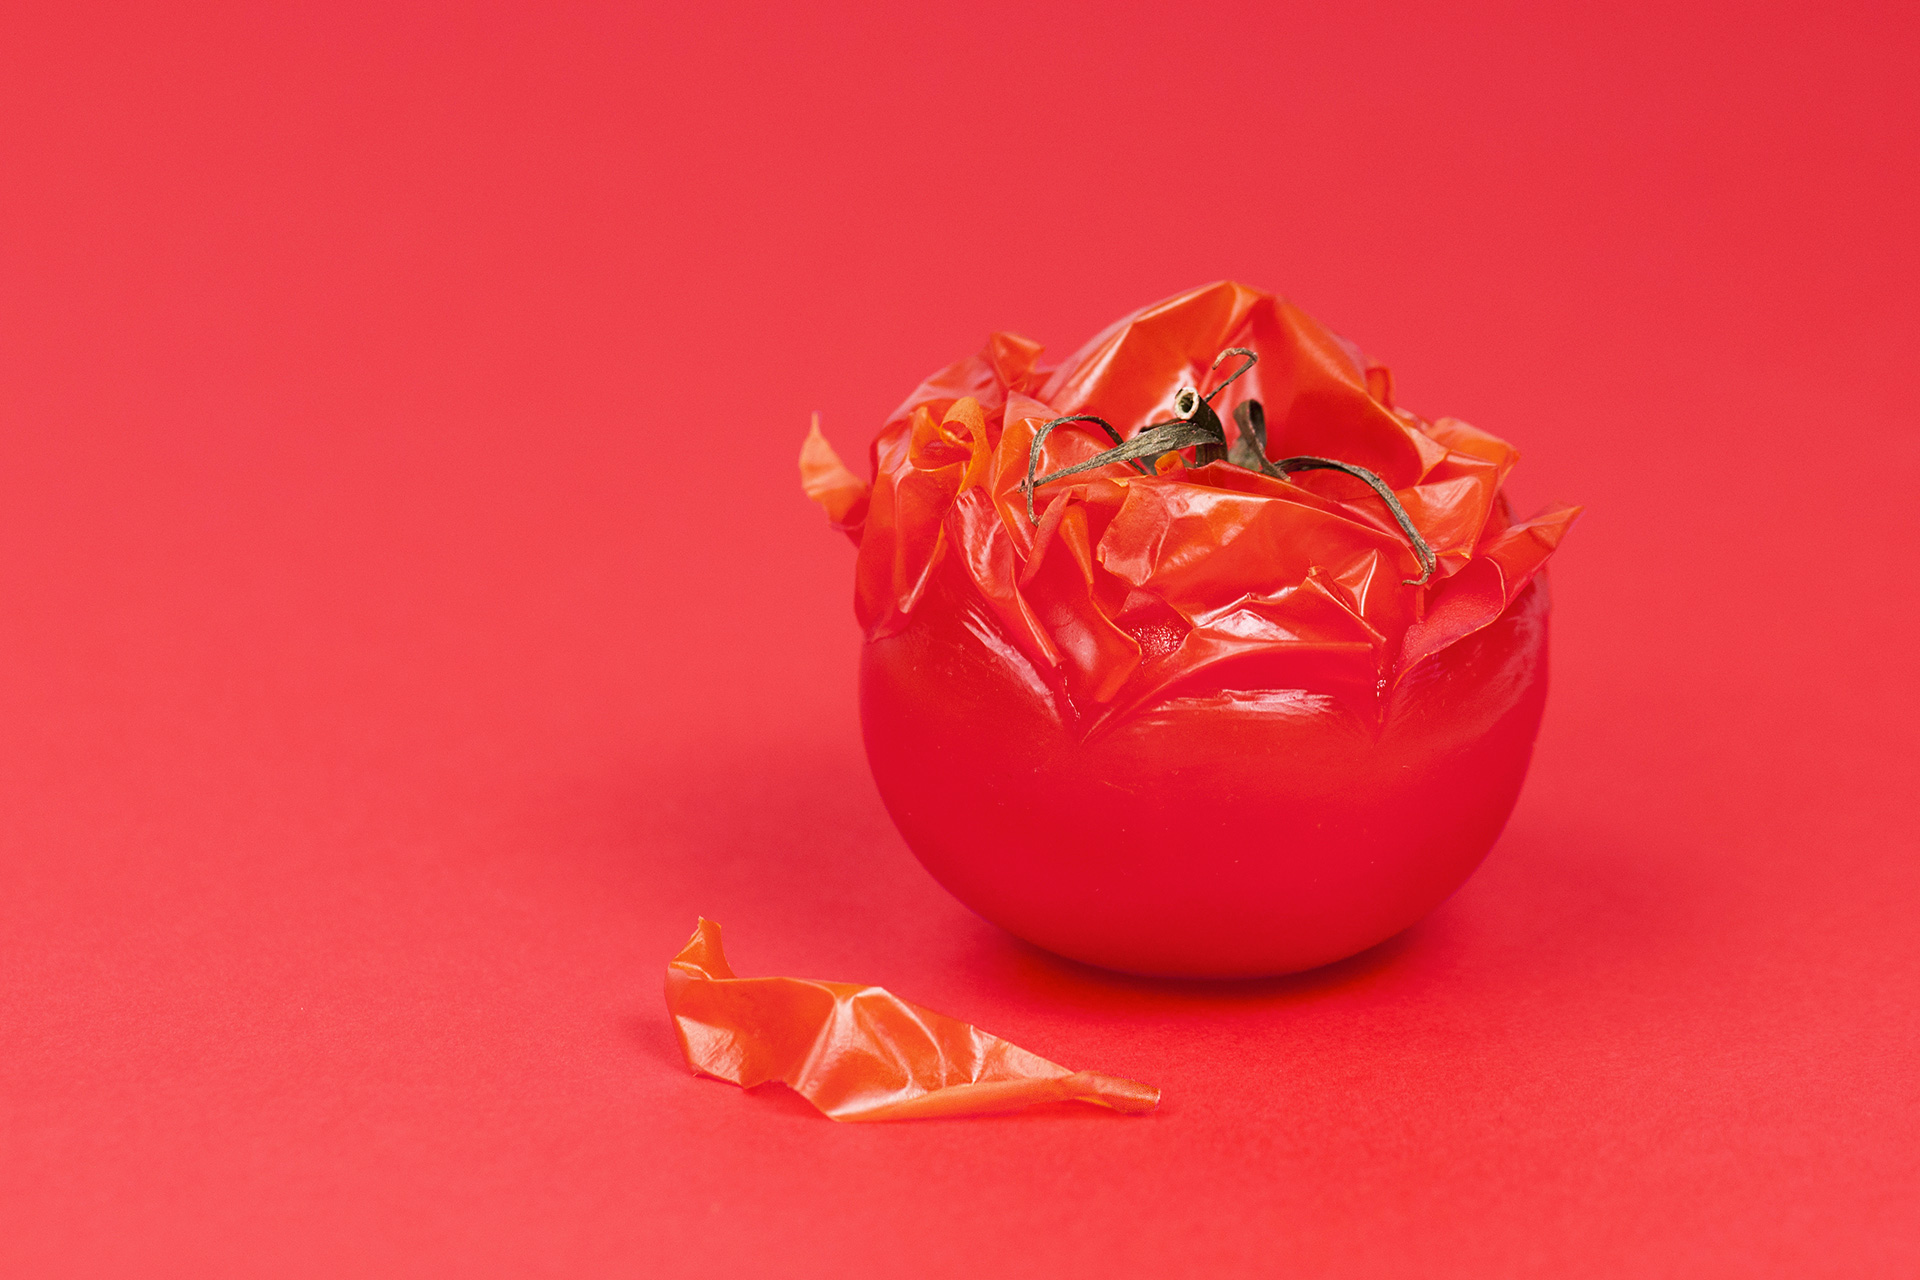 aire_food_peau_skin_tomate_red_rouge